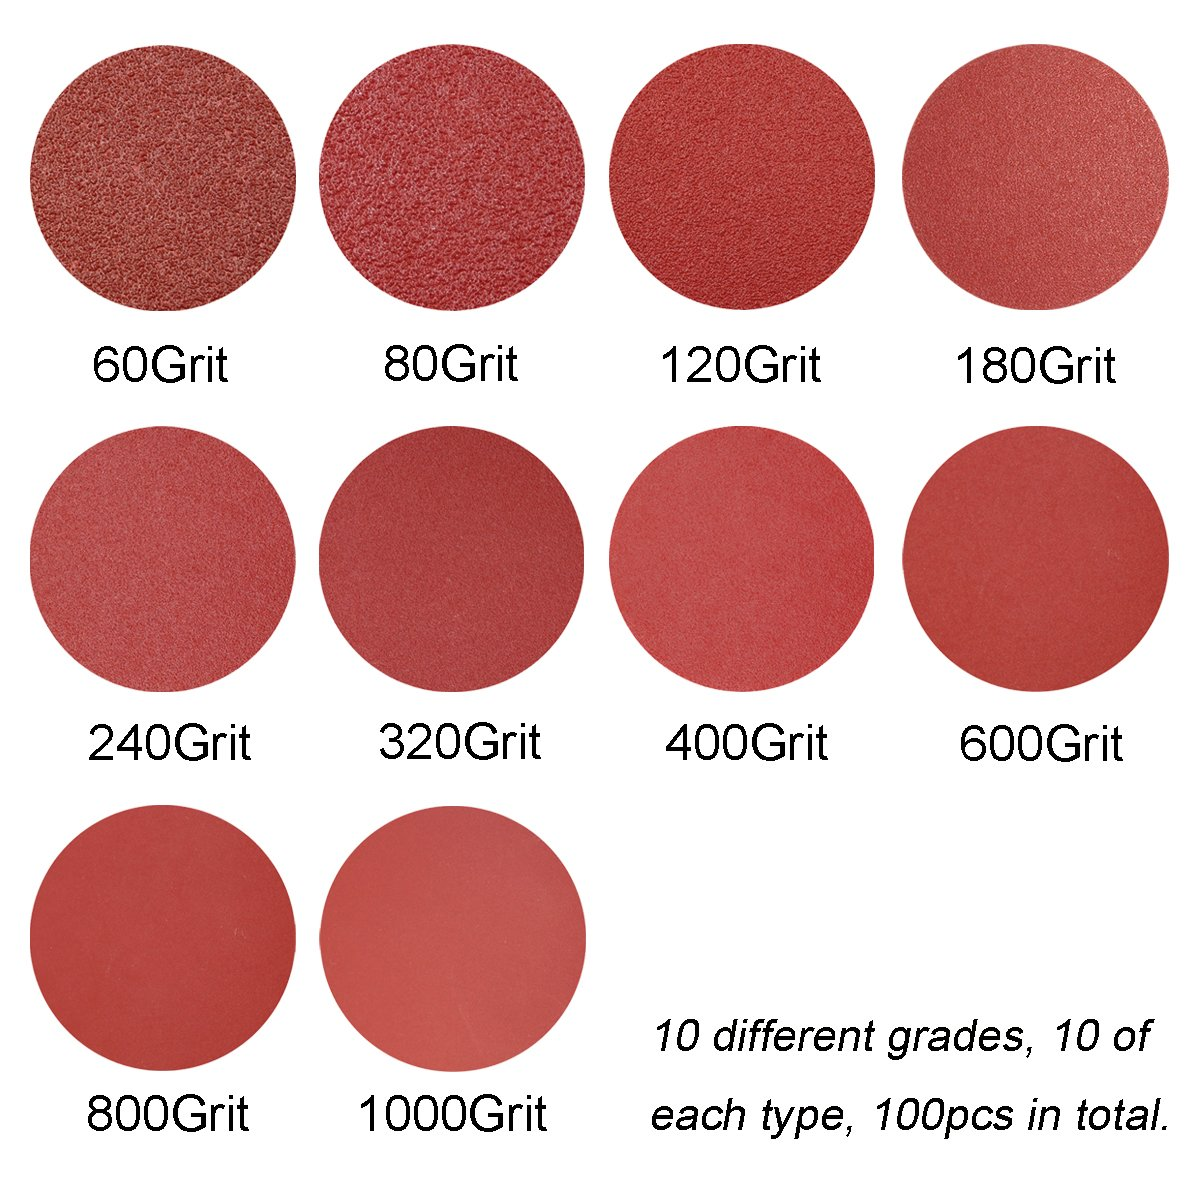 Self Adhsive Back 6-Inch PSA Sanding Discs Assorted Sandpaper 60-1000 Grits 100pcs by FRIMOONY